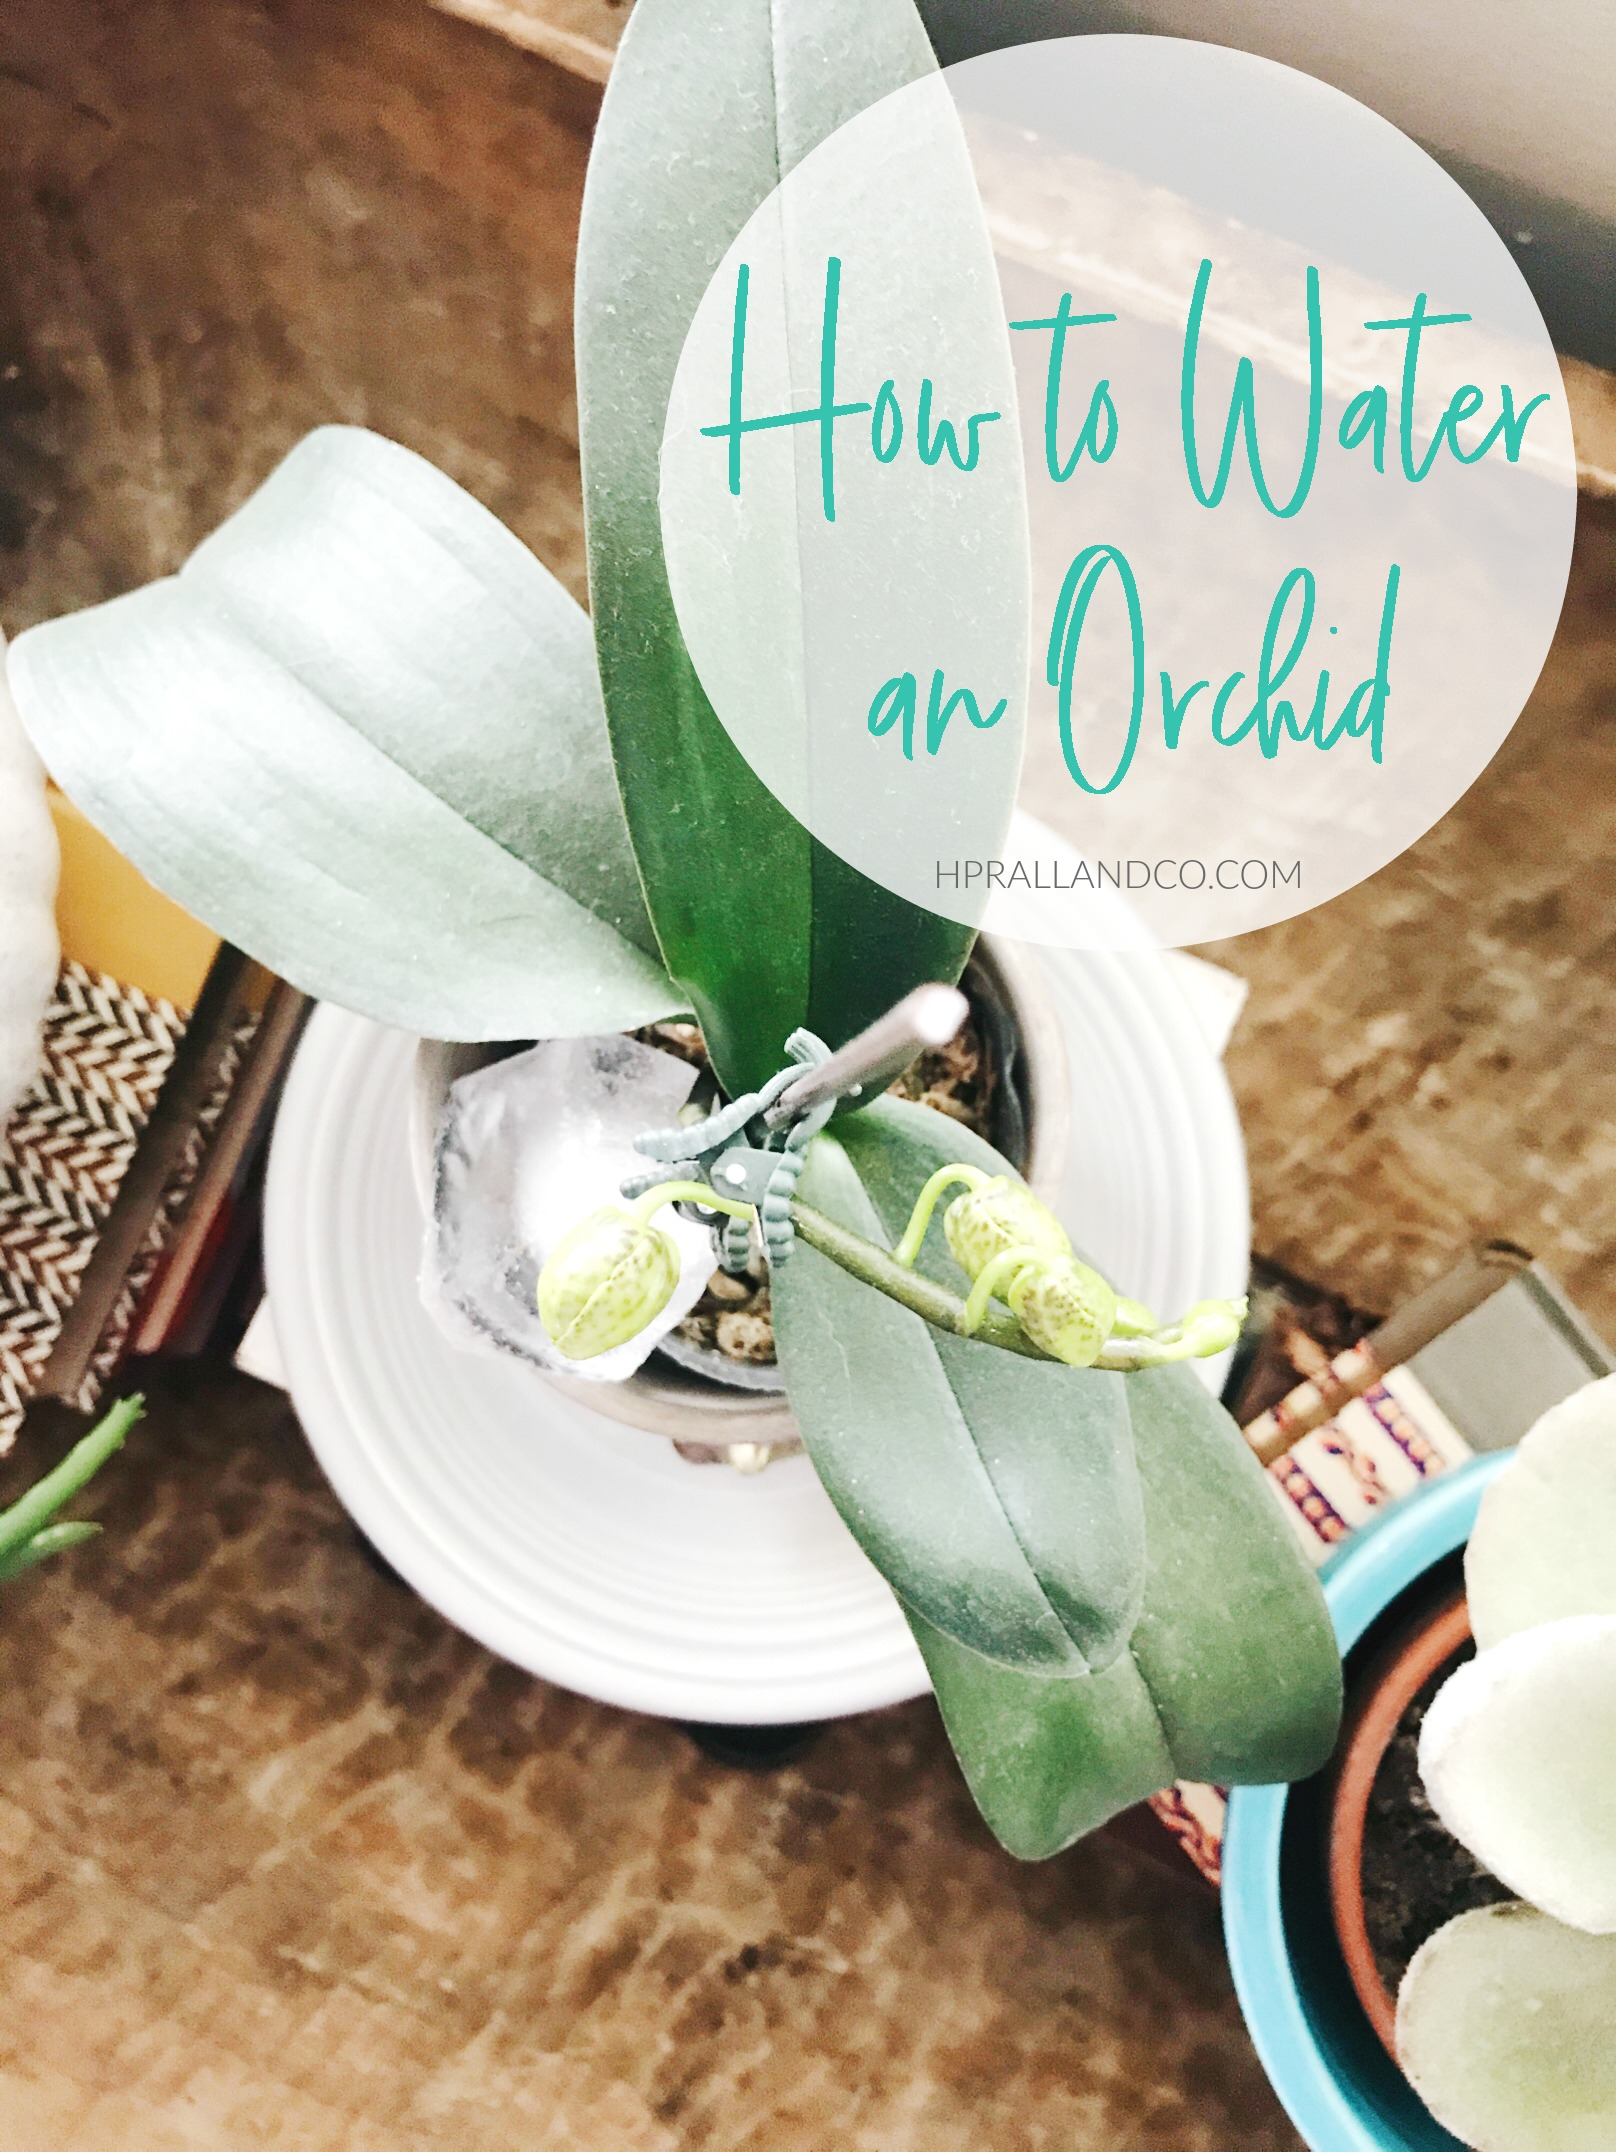 How to Water an Orchid from hprallandco.com